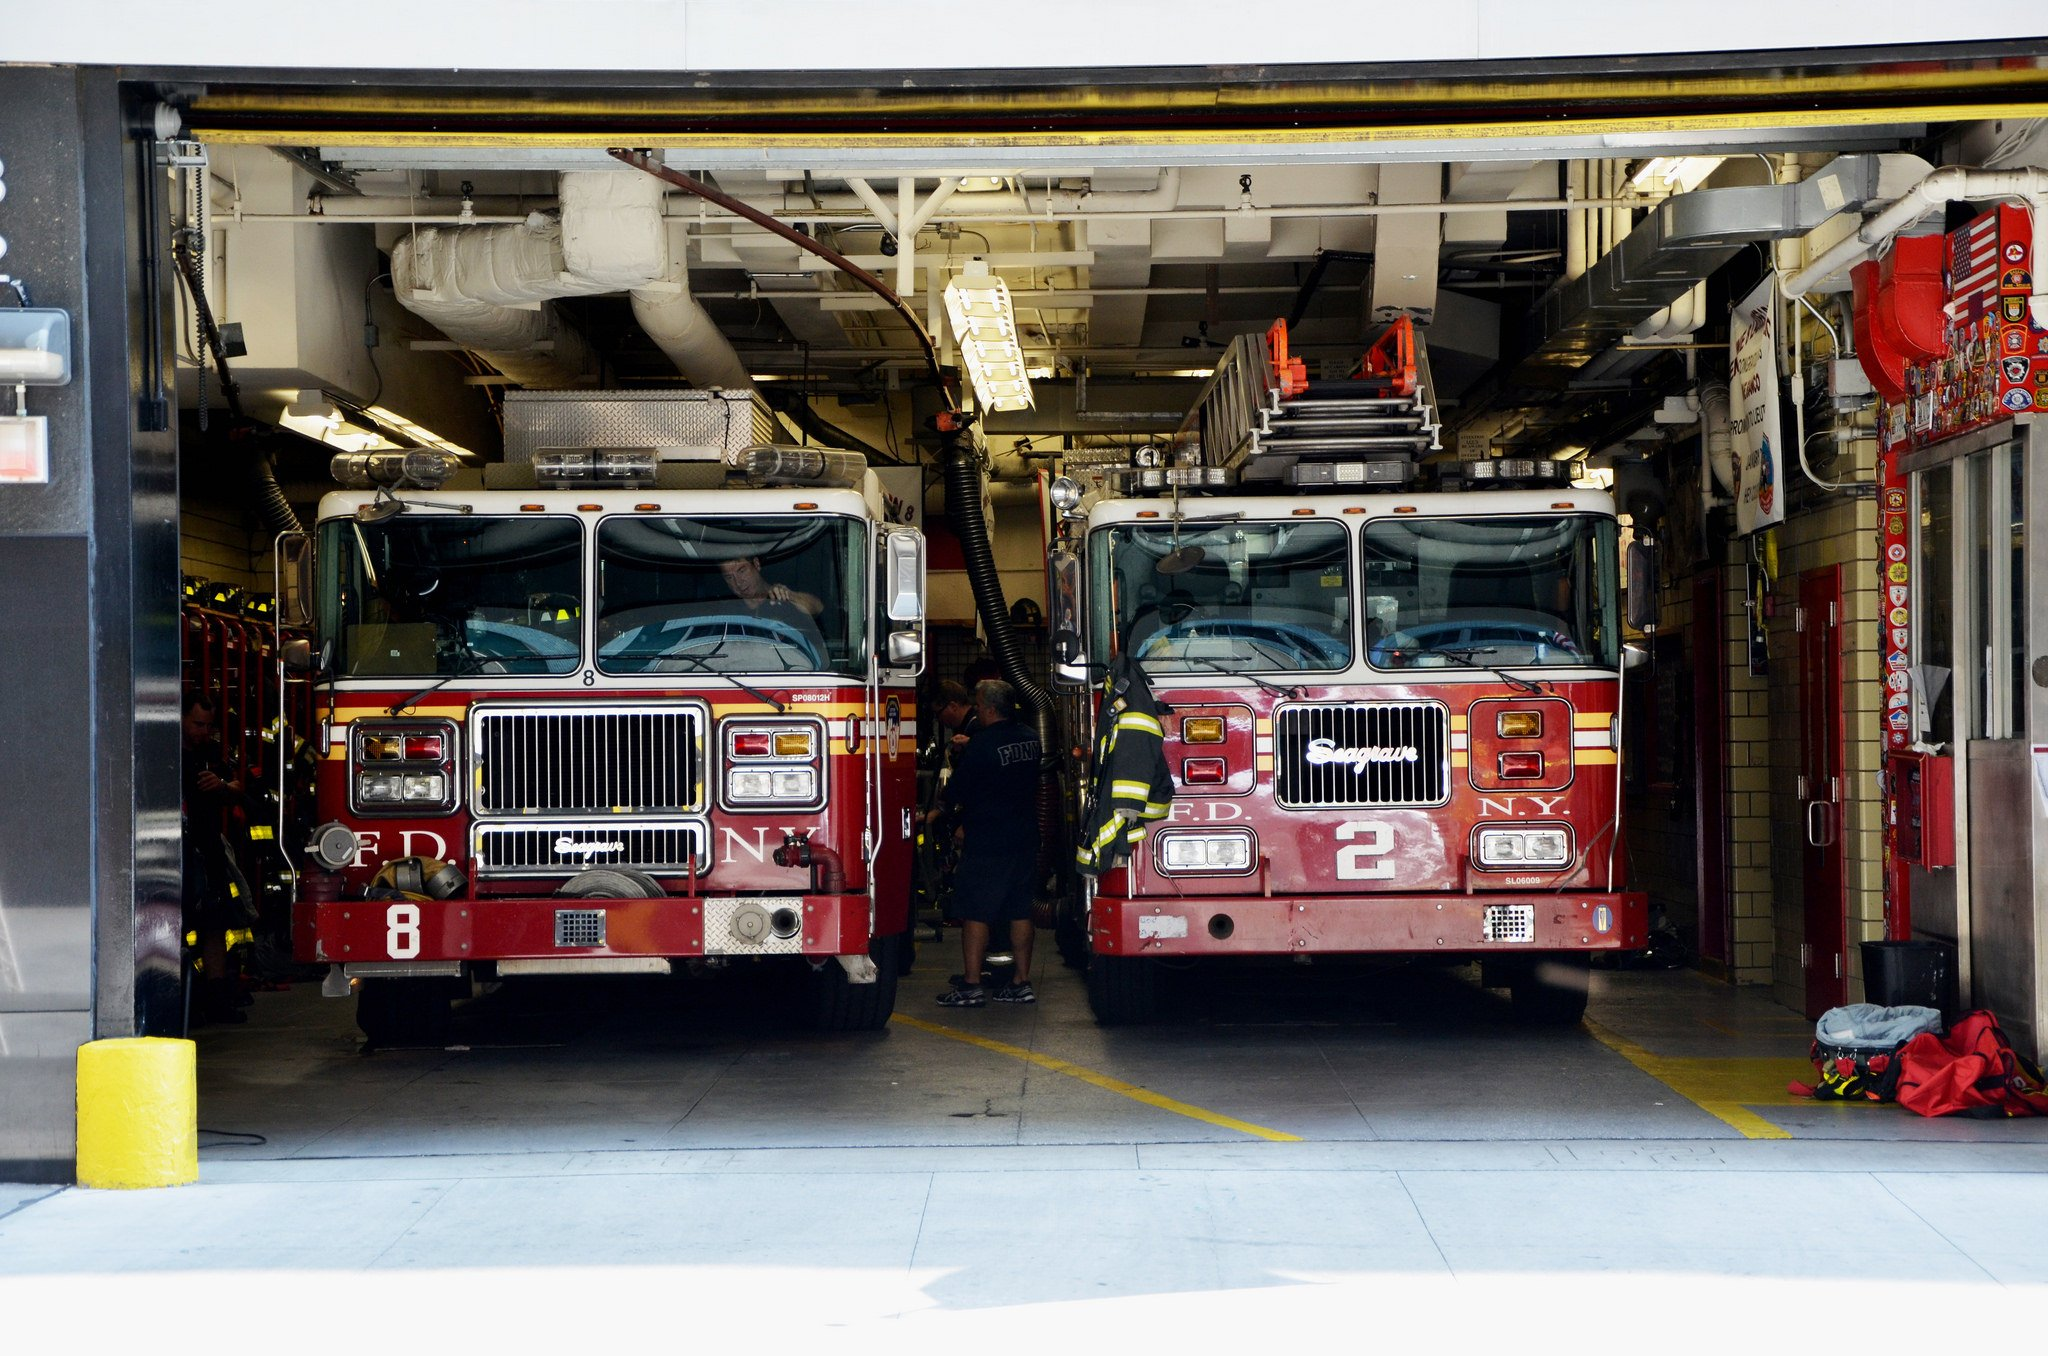 Ambulance camion cars boat emergency fire fire-departments fire truck medic new-york F D N Y ...